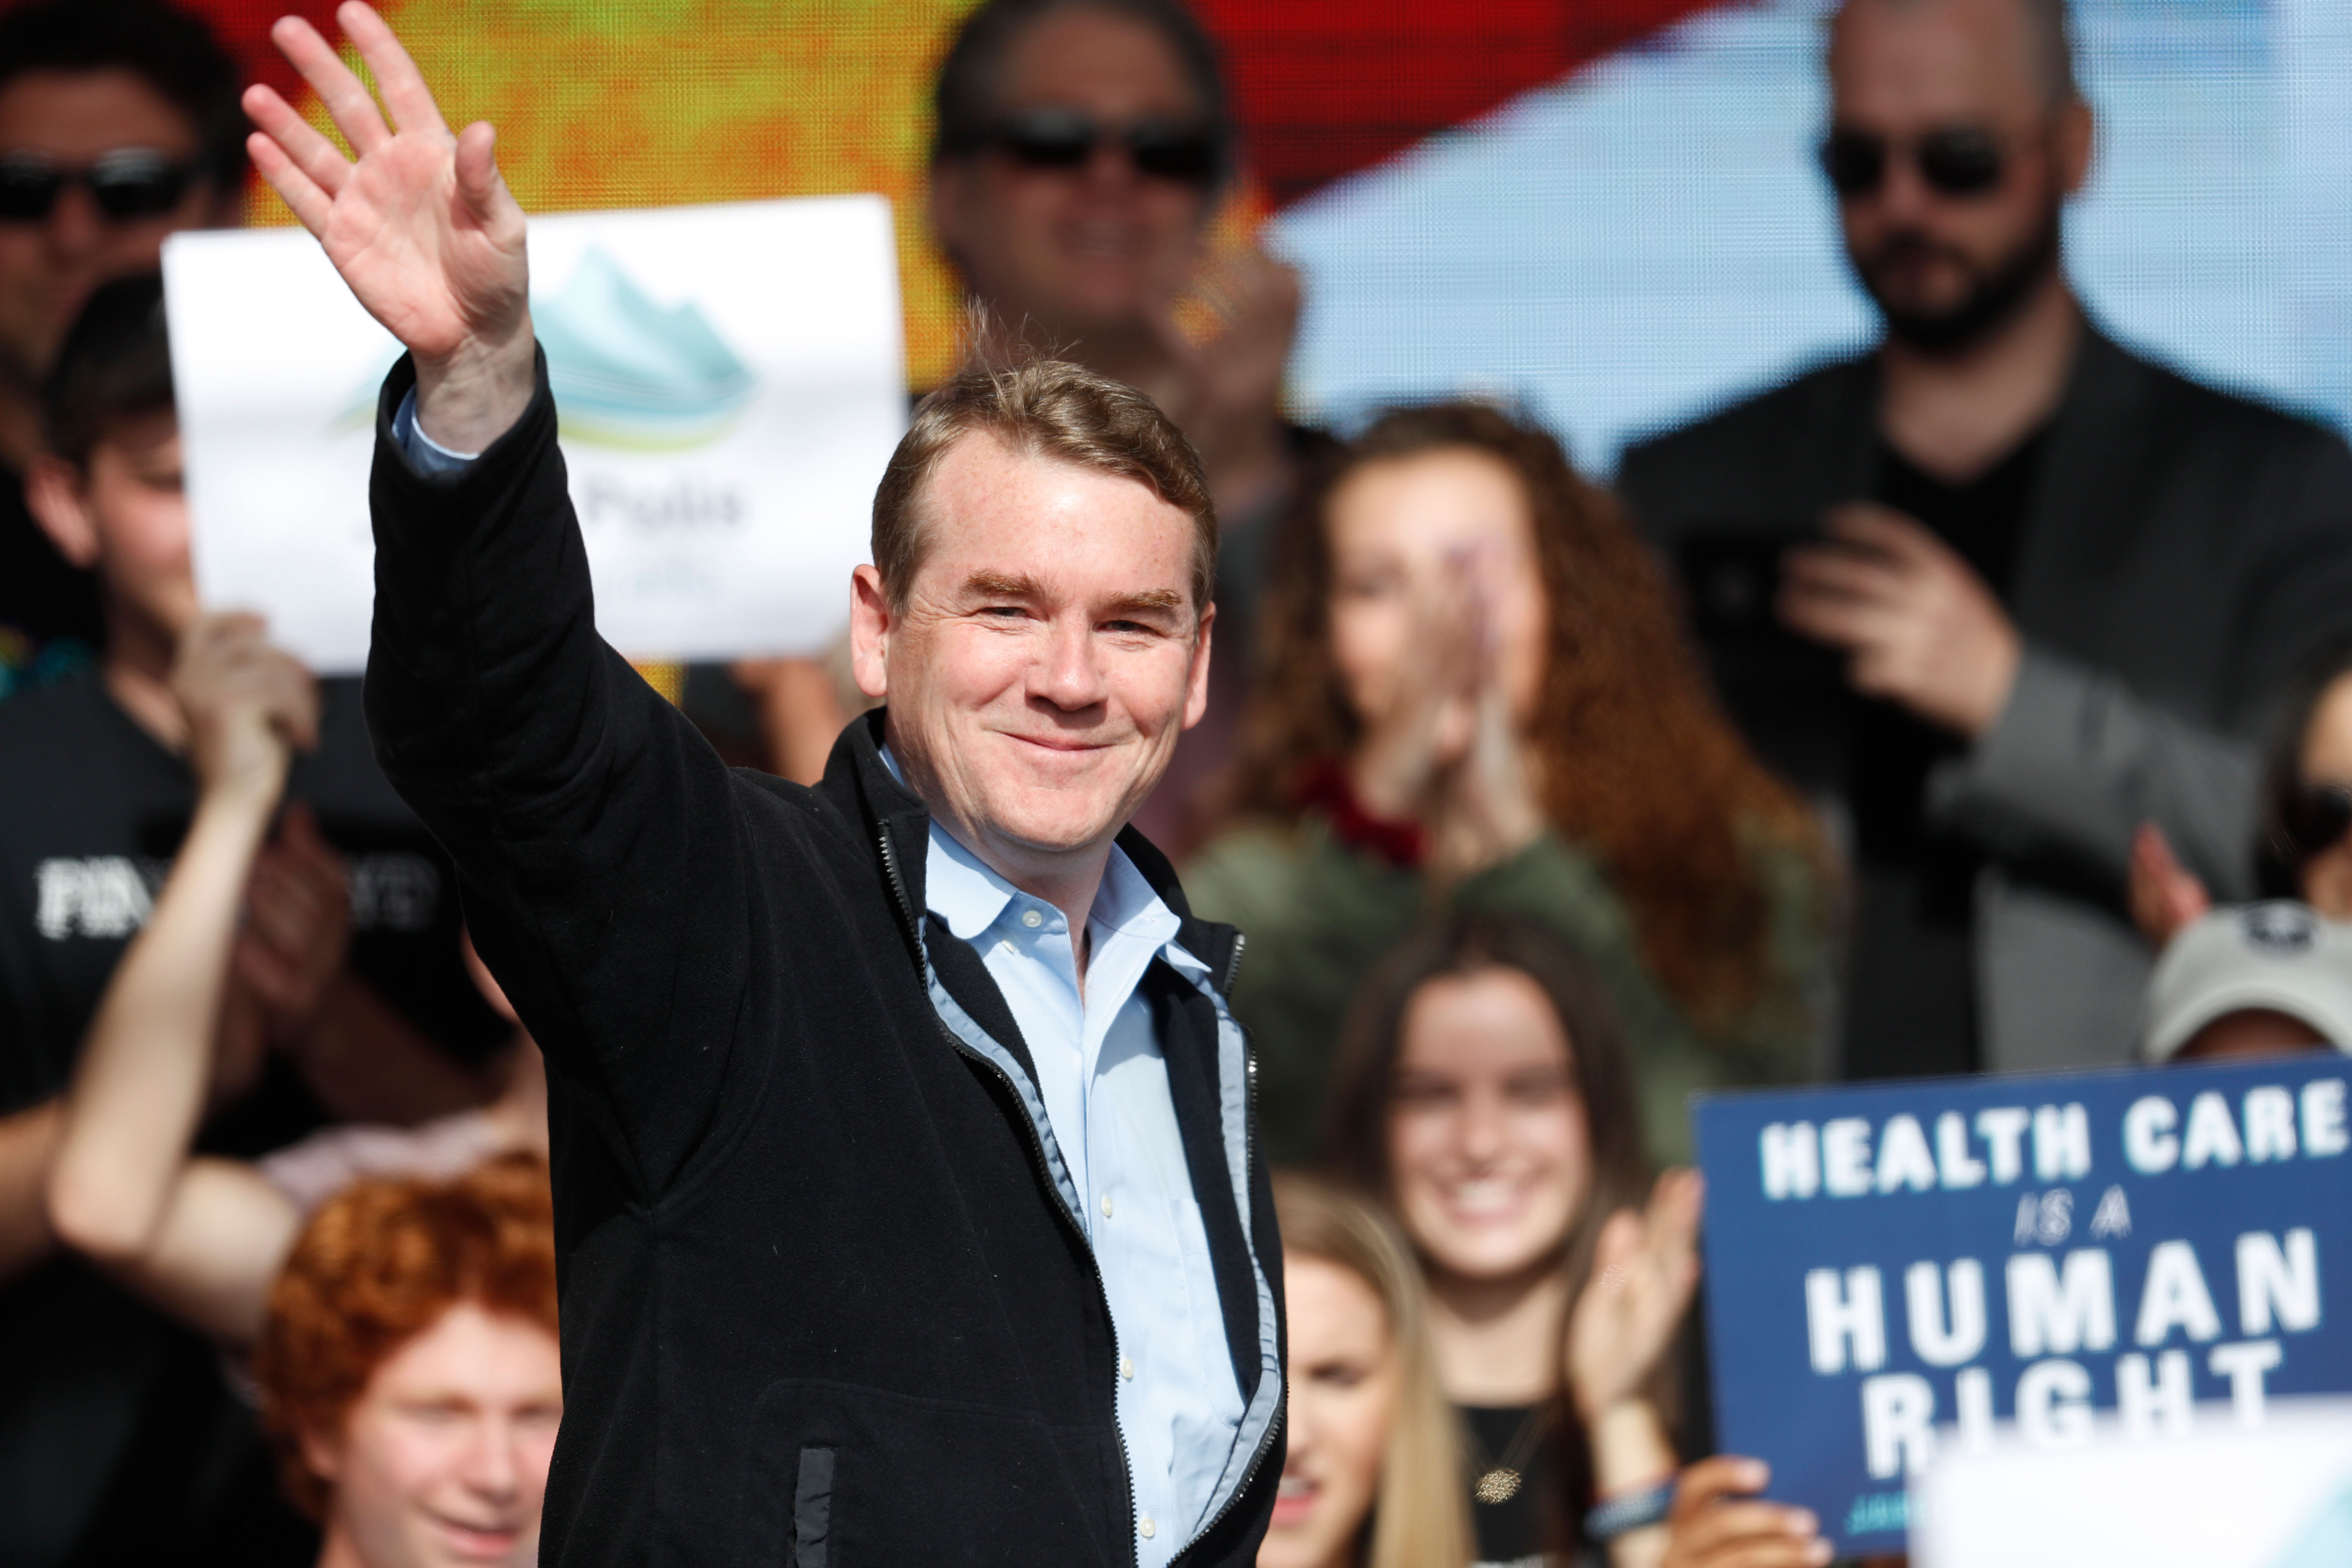 <p>Sen. Michael Bennet, D-Colo., greets voters before Sen. Bernie Sanders speaks during a rally with young voters on the campus of the University of Colorado Wednesday, Oct. 24, 2018, in Boulder, Colo.</p>